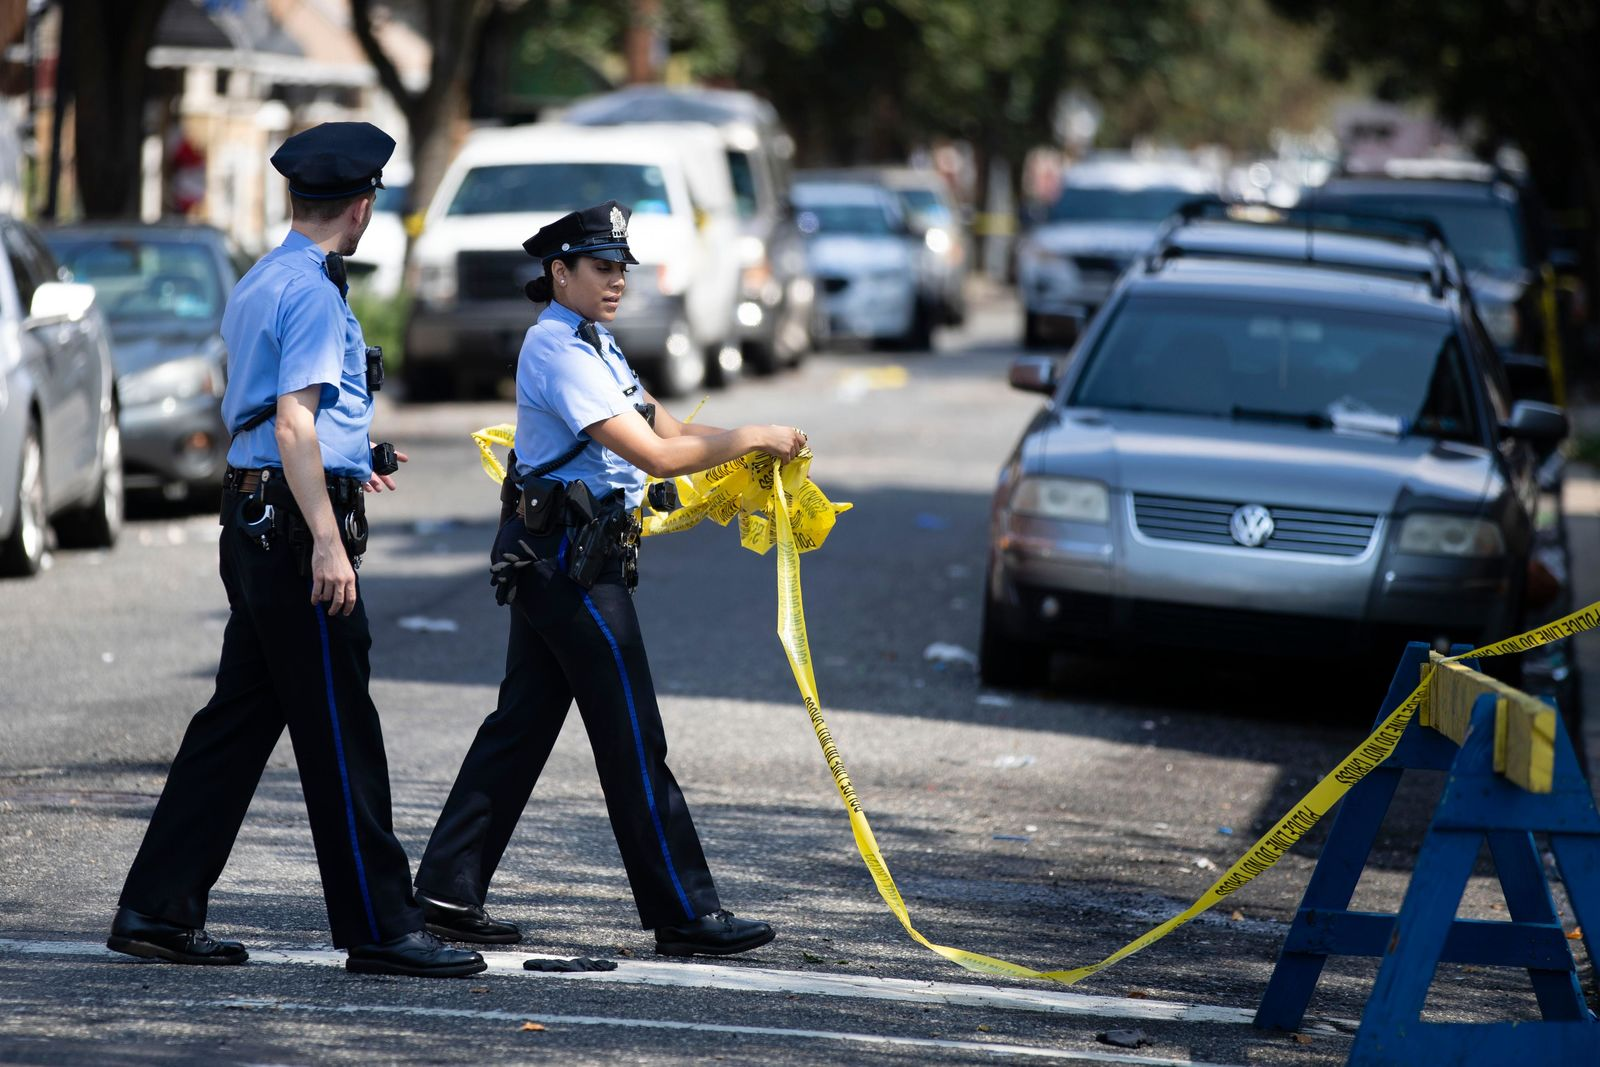 Officers move tape at the scene of Wednesday's standoff with police in Philadelphia, Thursday, Aug. 15, 2019. The gunman, identified as Maurice Hill, wounded six police officers before surrendering early Thursday, after a 7 ½-hour standoff. (AP Photo/Matt Rourke)